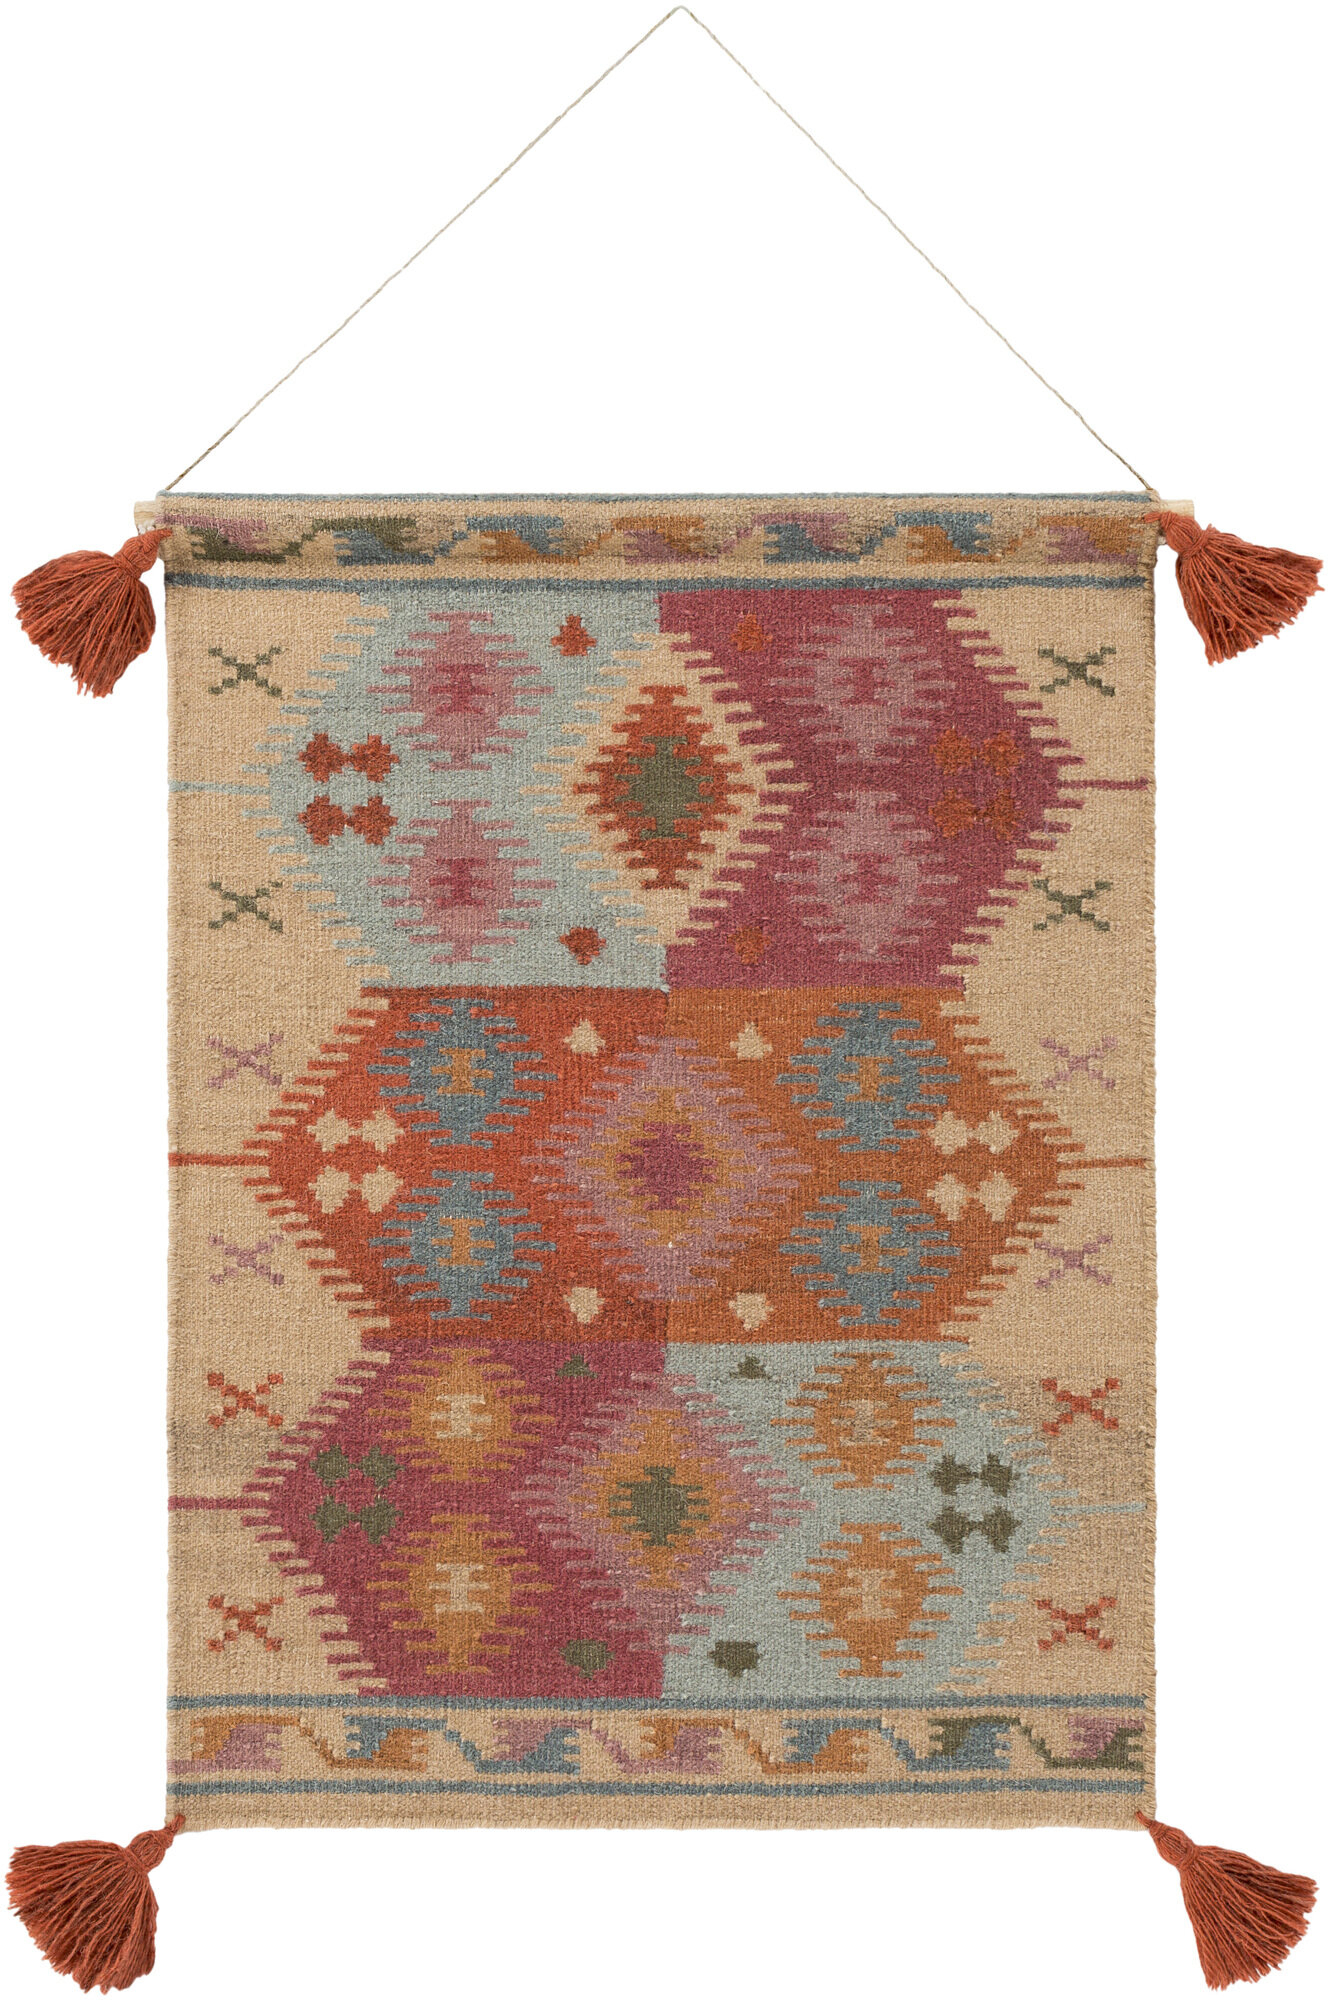 Sariah Wool Wall Hanging With Hanging Accessories Included Pertaining To Most Up To Date Blended Fabric Clancy Wool And Cotton Wall Hangings With Hanging Accessories Included (View 4 of 20)